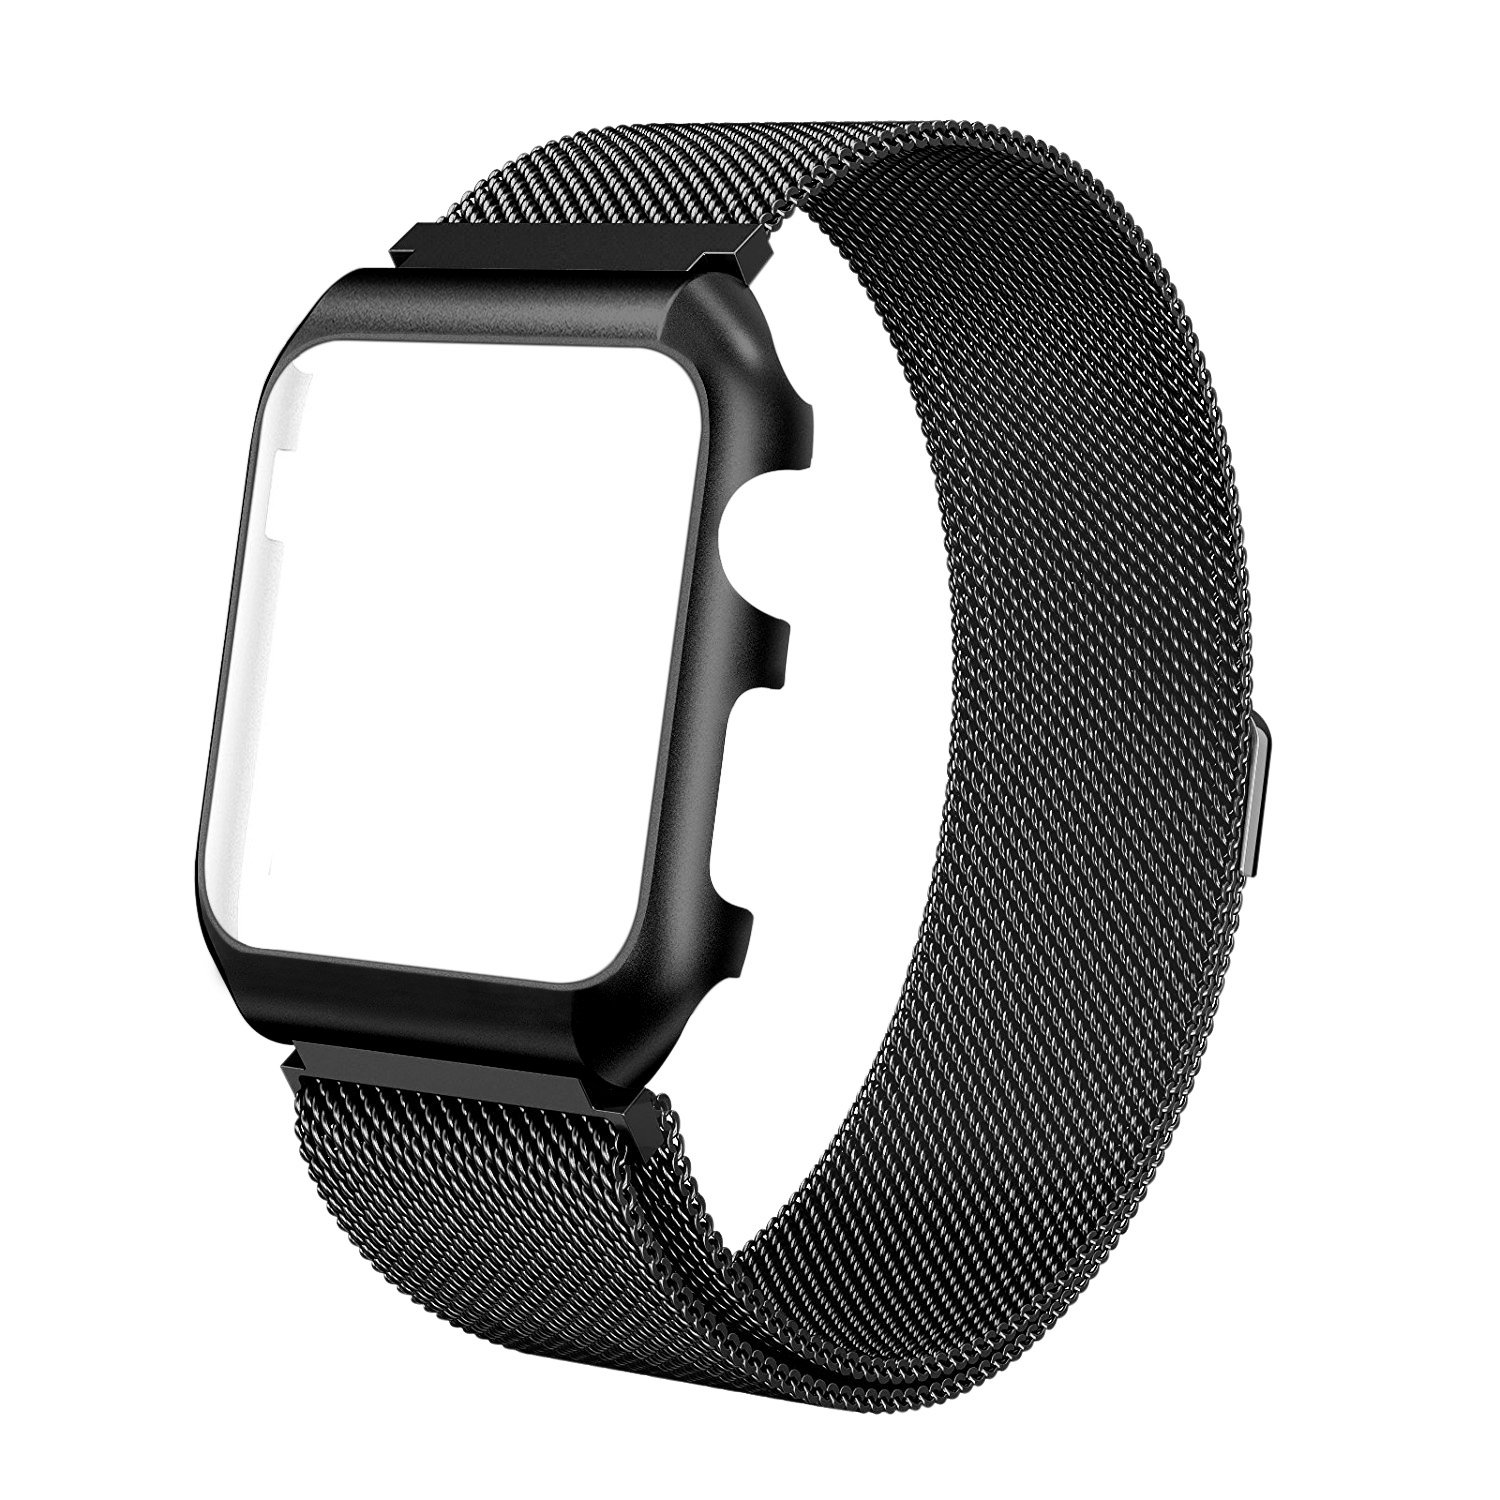 For Apple Watch Band 42mm Milanese Loop Stainless Steel Replacement Band with Metal protective Case Band for Apple Watch Series 3 Series 2 Series 1 Sport & Edition (Black, For apple watch 42mm)